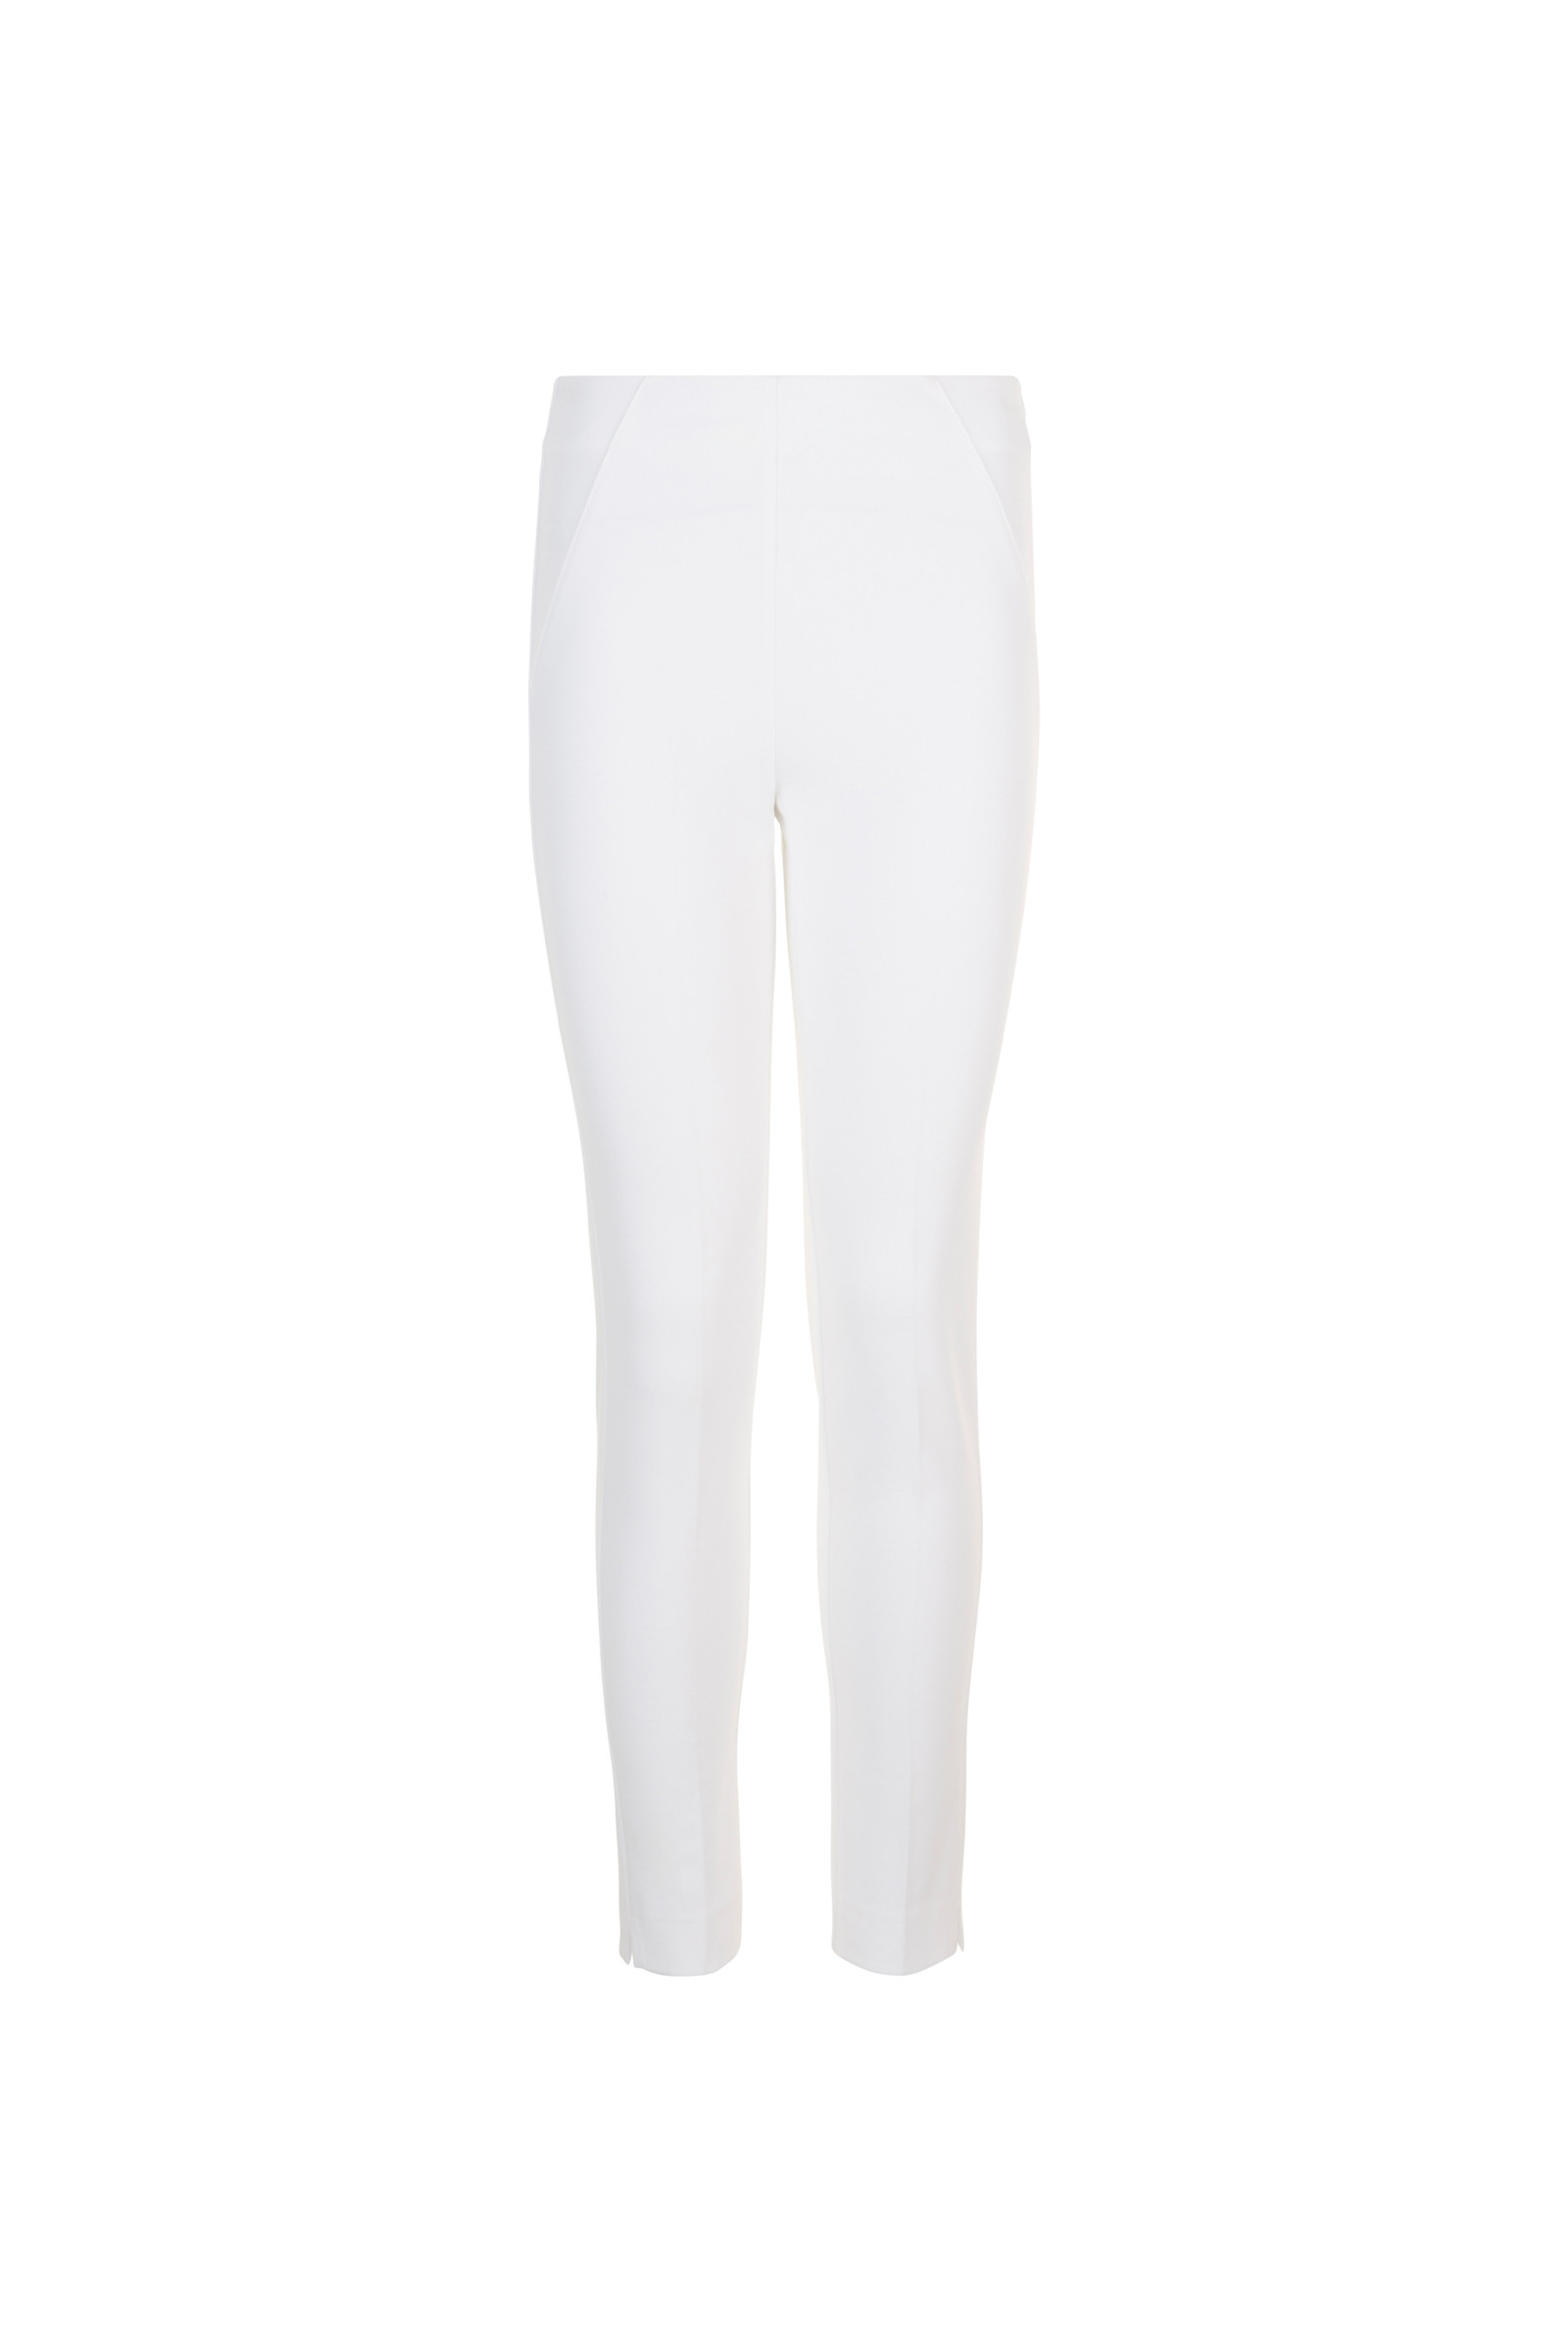 ITALIAN FABRIC LEGGING BLAKE WHITE